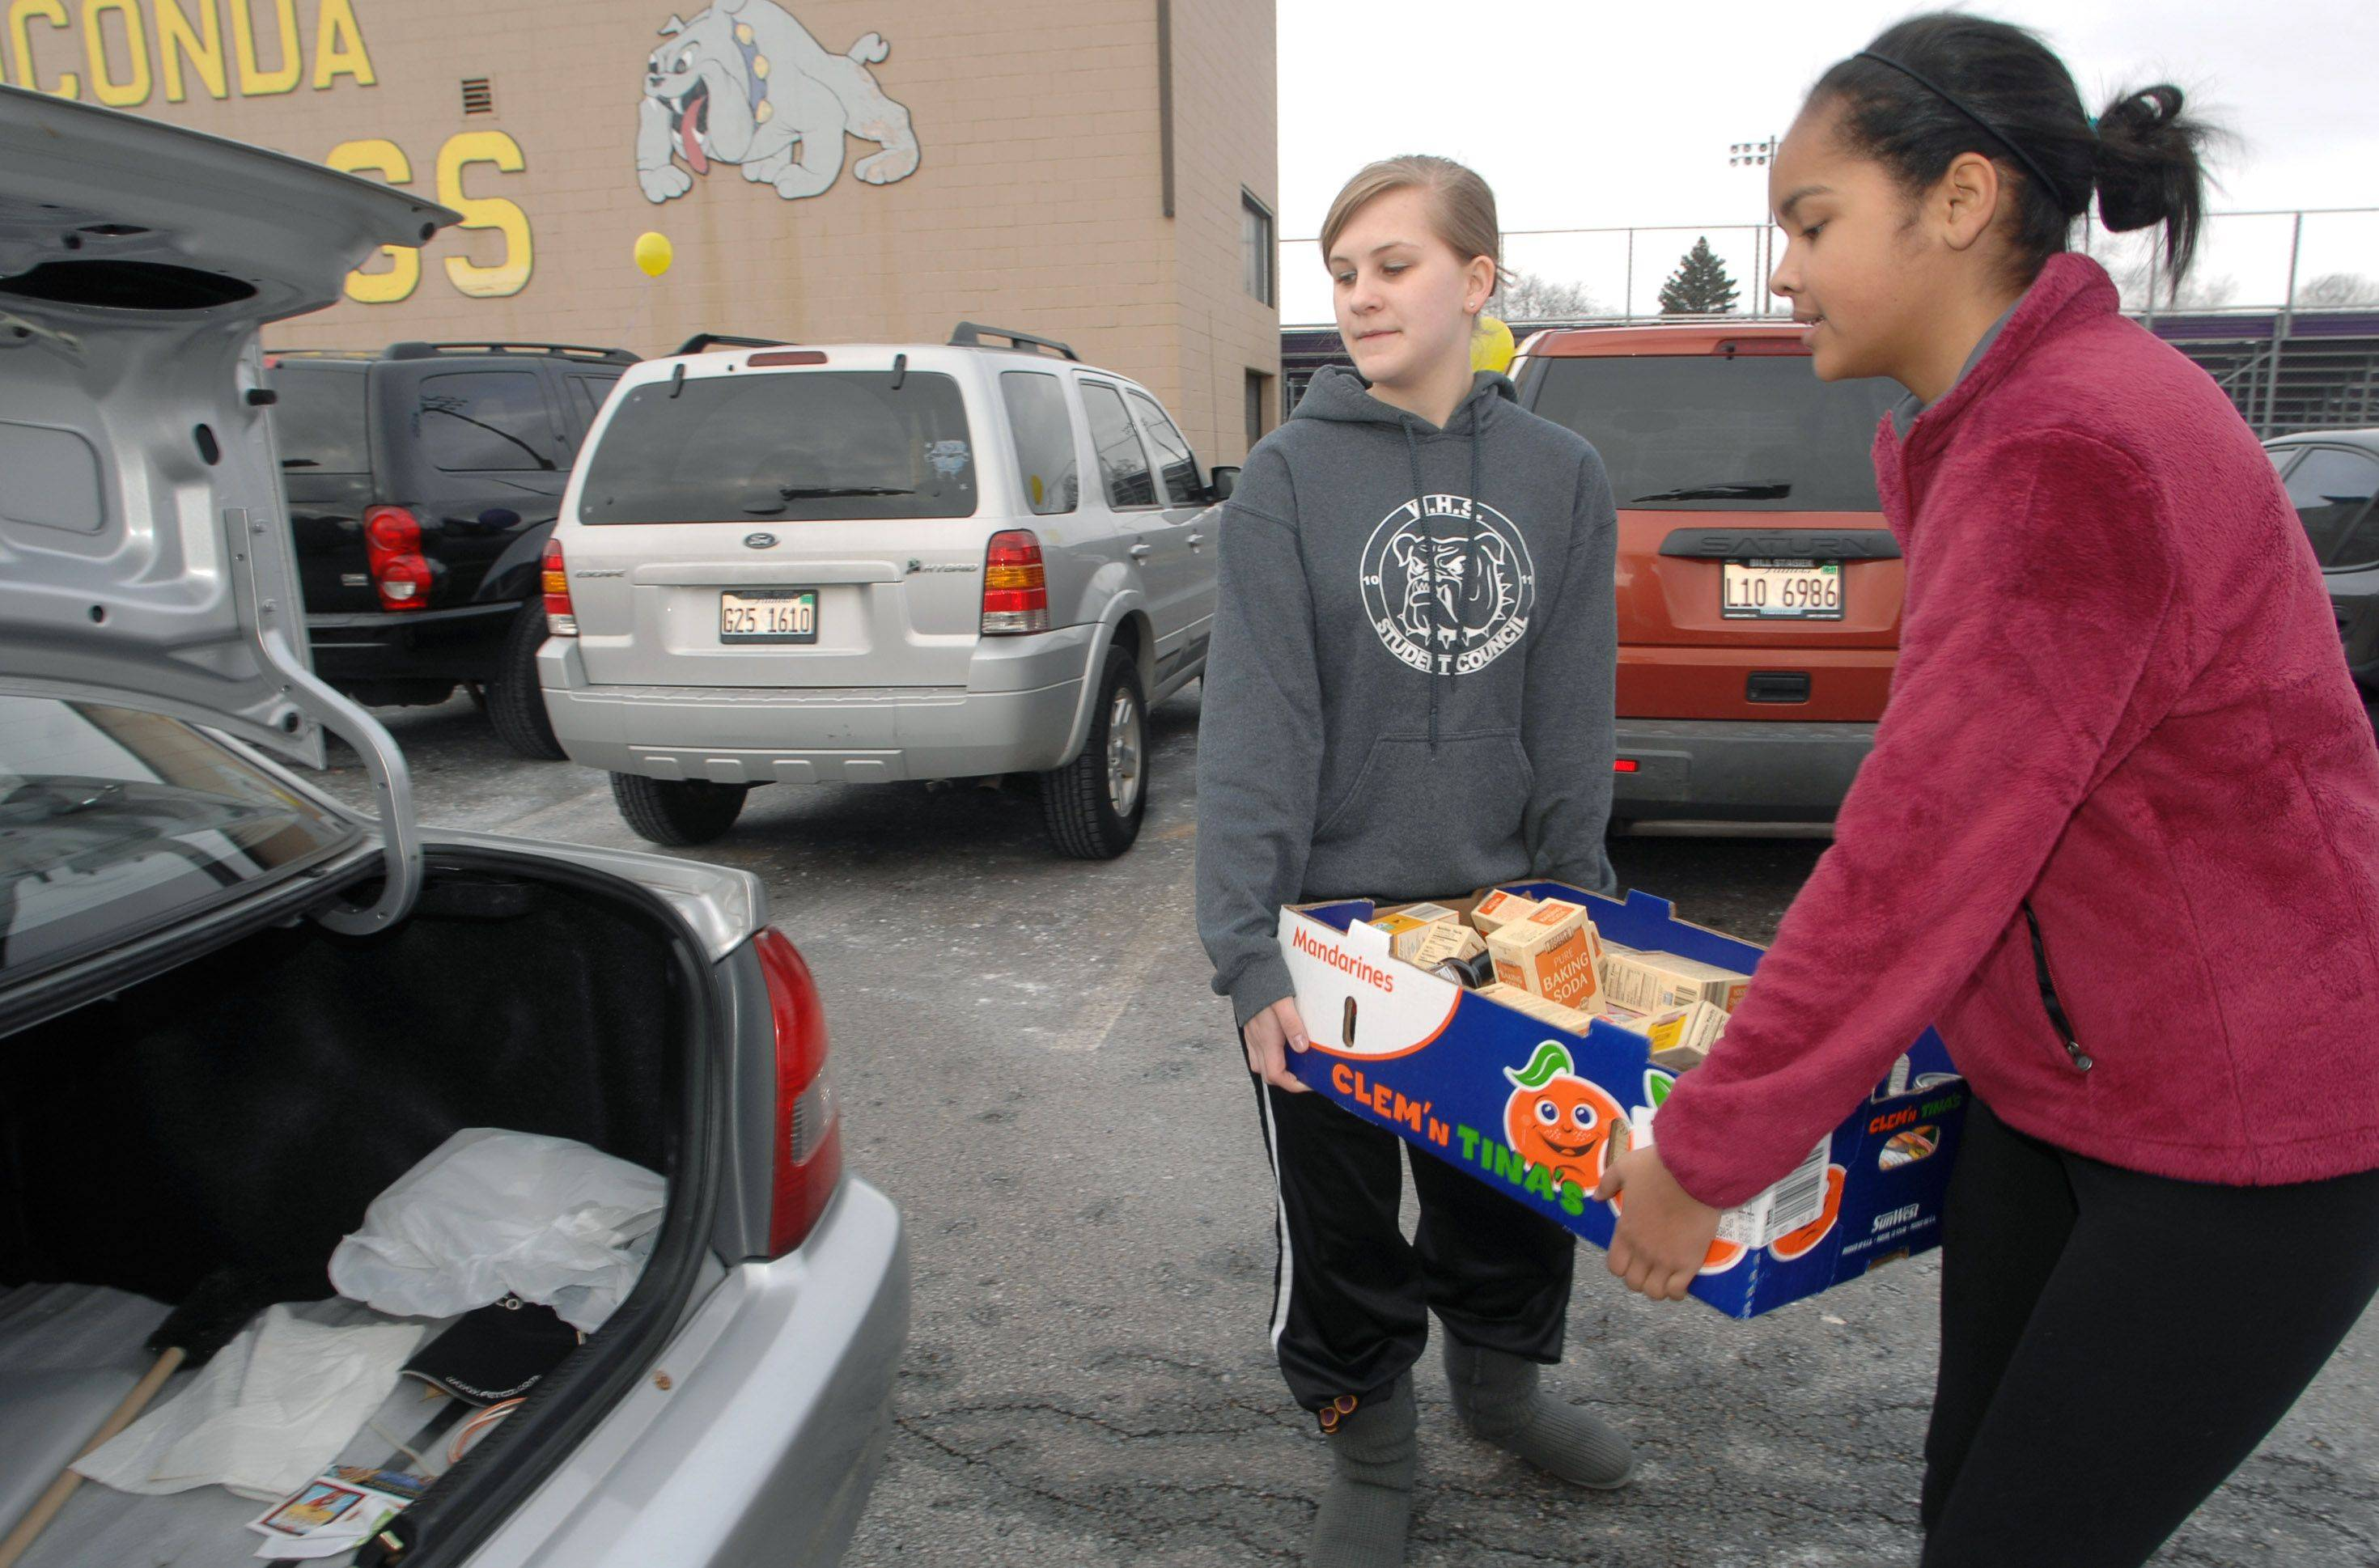 Wauconda High School sophomore student council members Sami Sroka, left, and Tatiana Moten load up vehicles Friday morning as part of the school's food drive for the Wauconda-Island Lake Food Pantry.